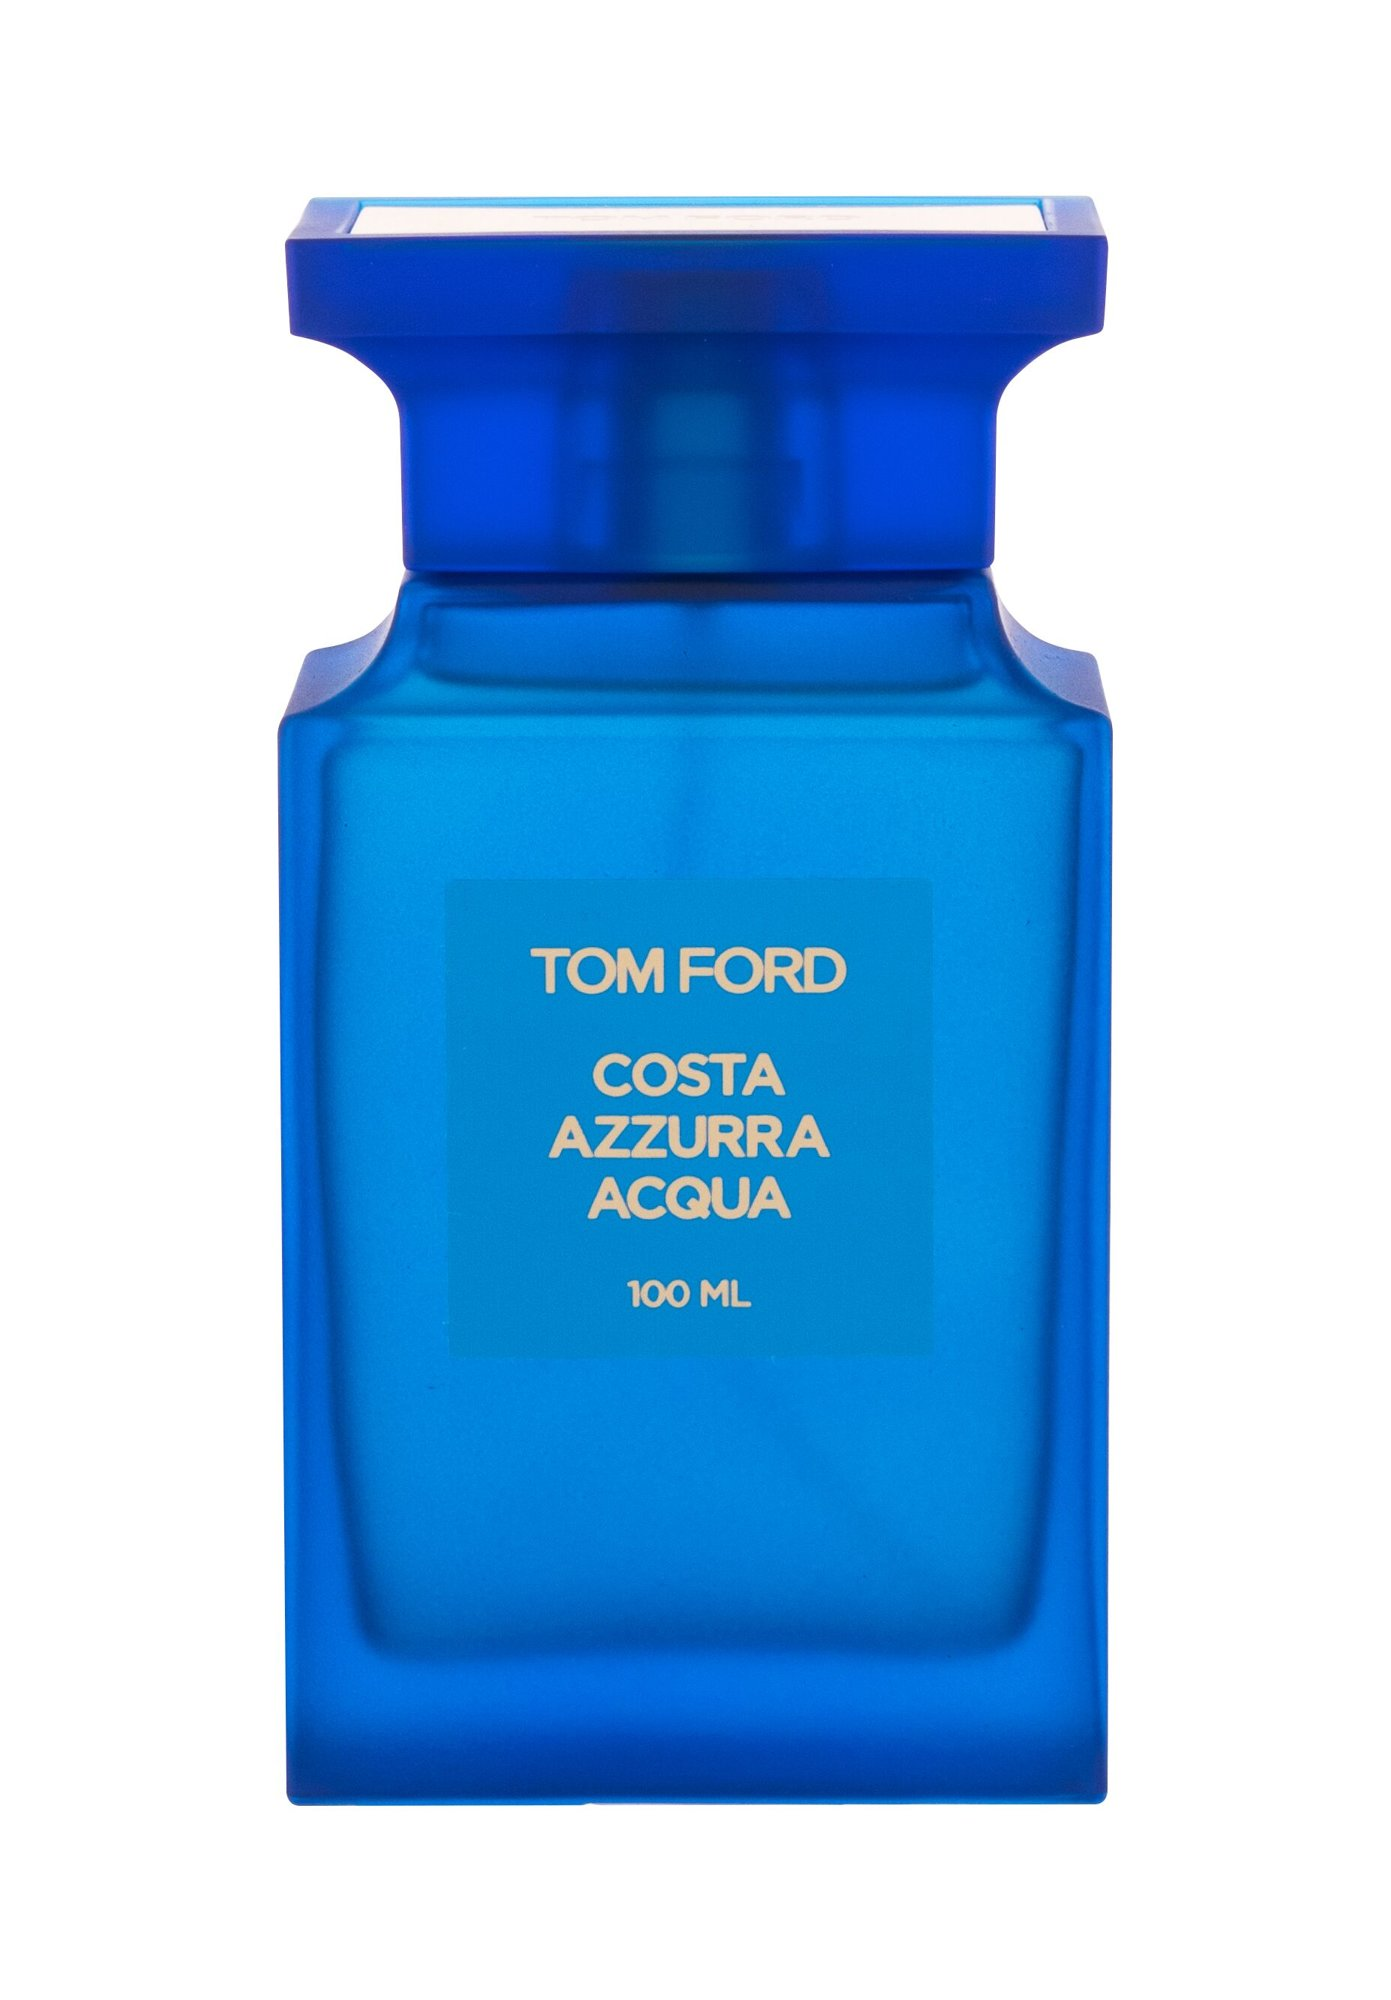 TOM FORD Costa Azzurra Acqua, edt 100ml